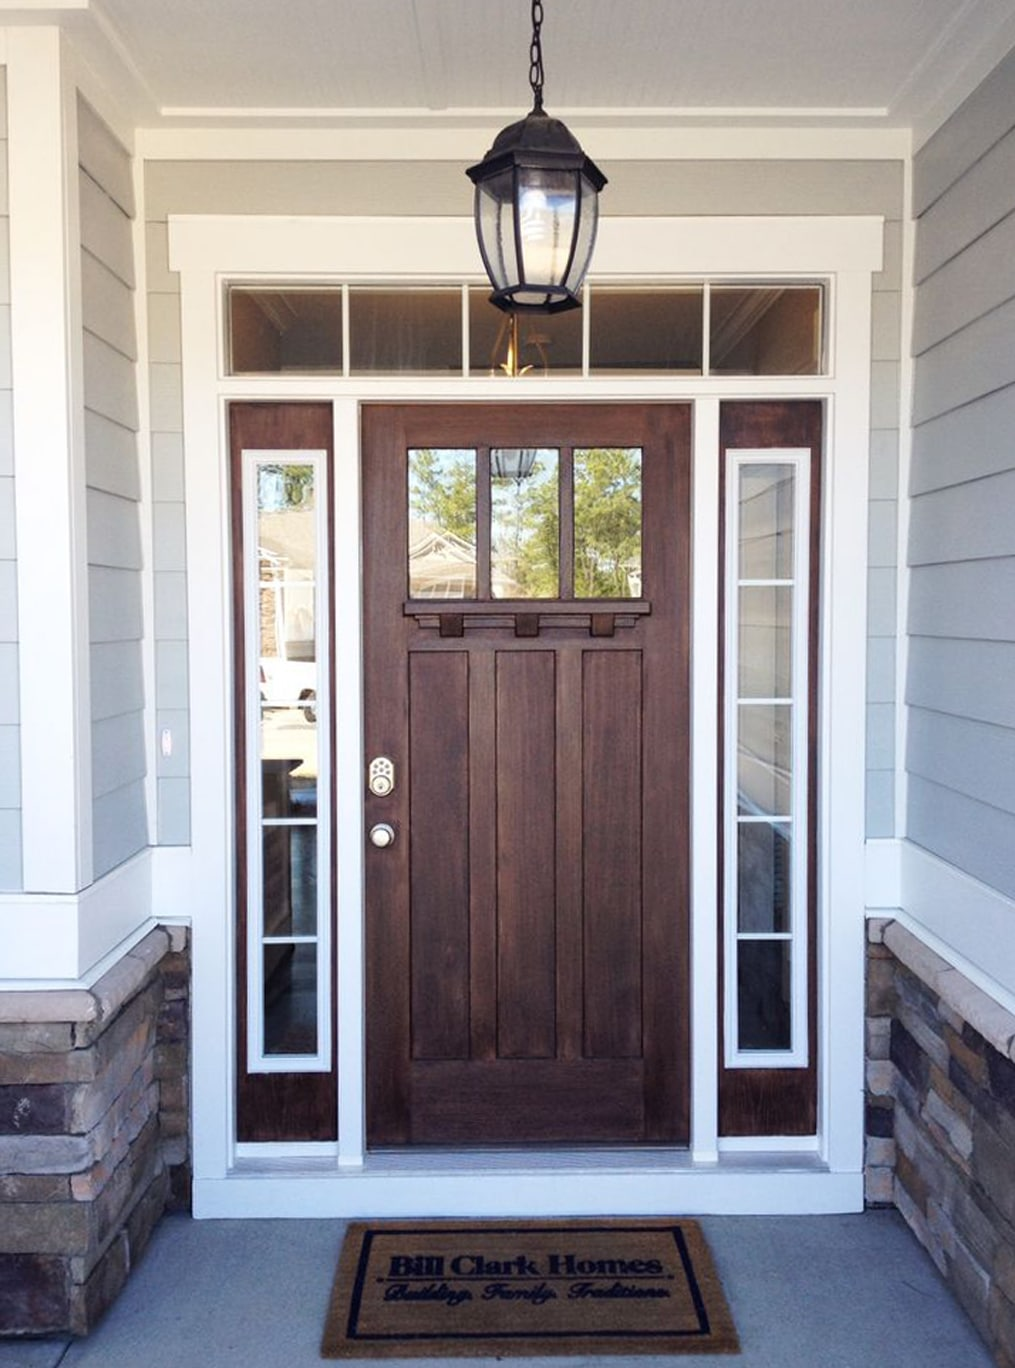 Rustic front door from Legacy Homes by Bill Clark